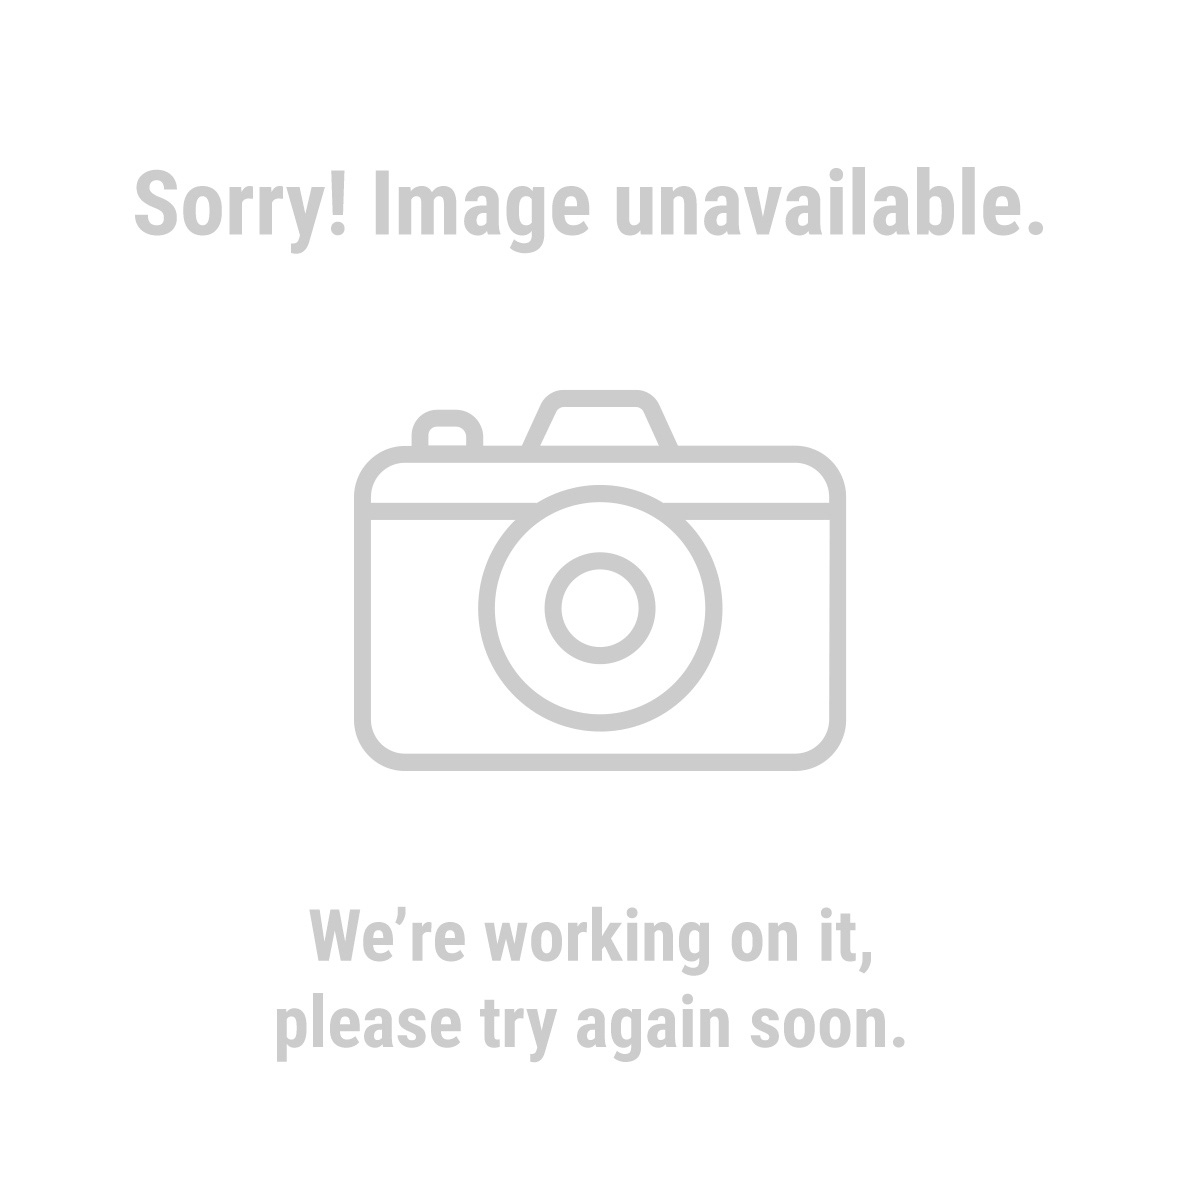 U.S. General 61161 350 lb. Capacity Large Service Cart with Locking Drawer